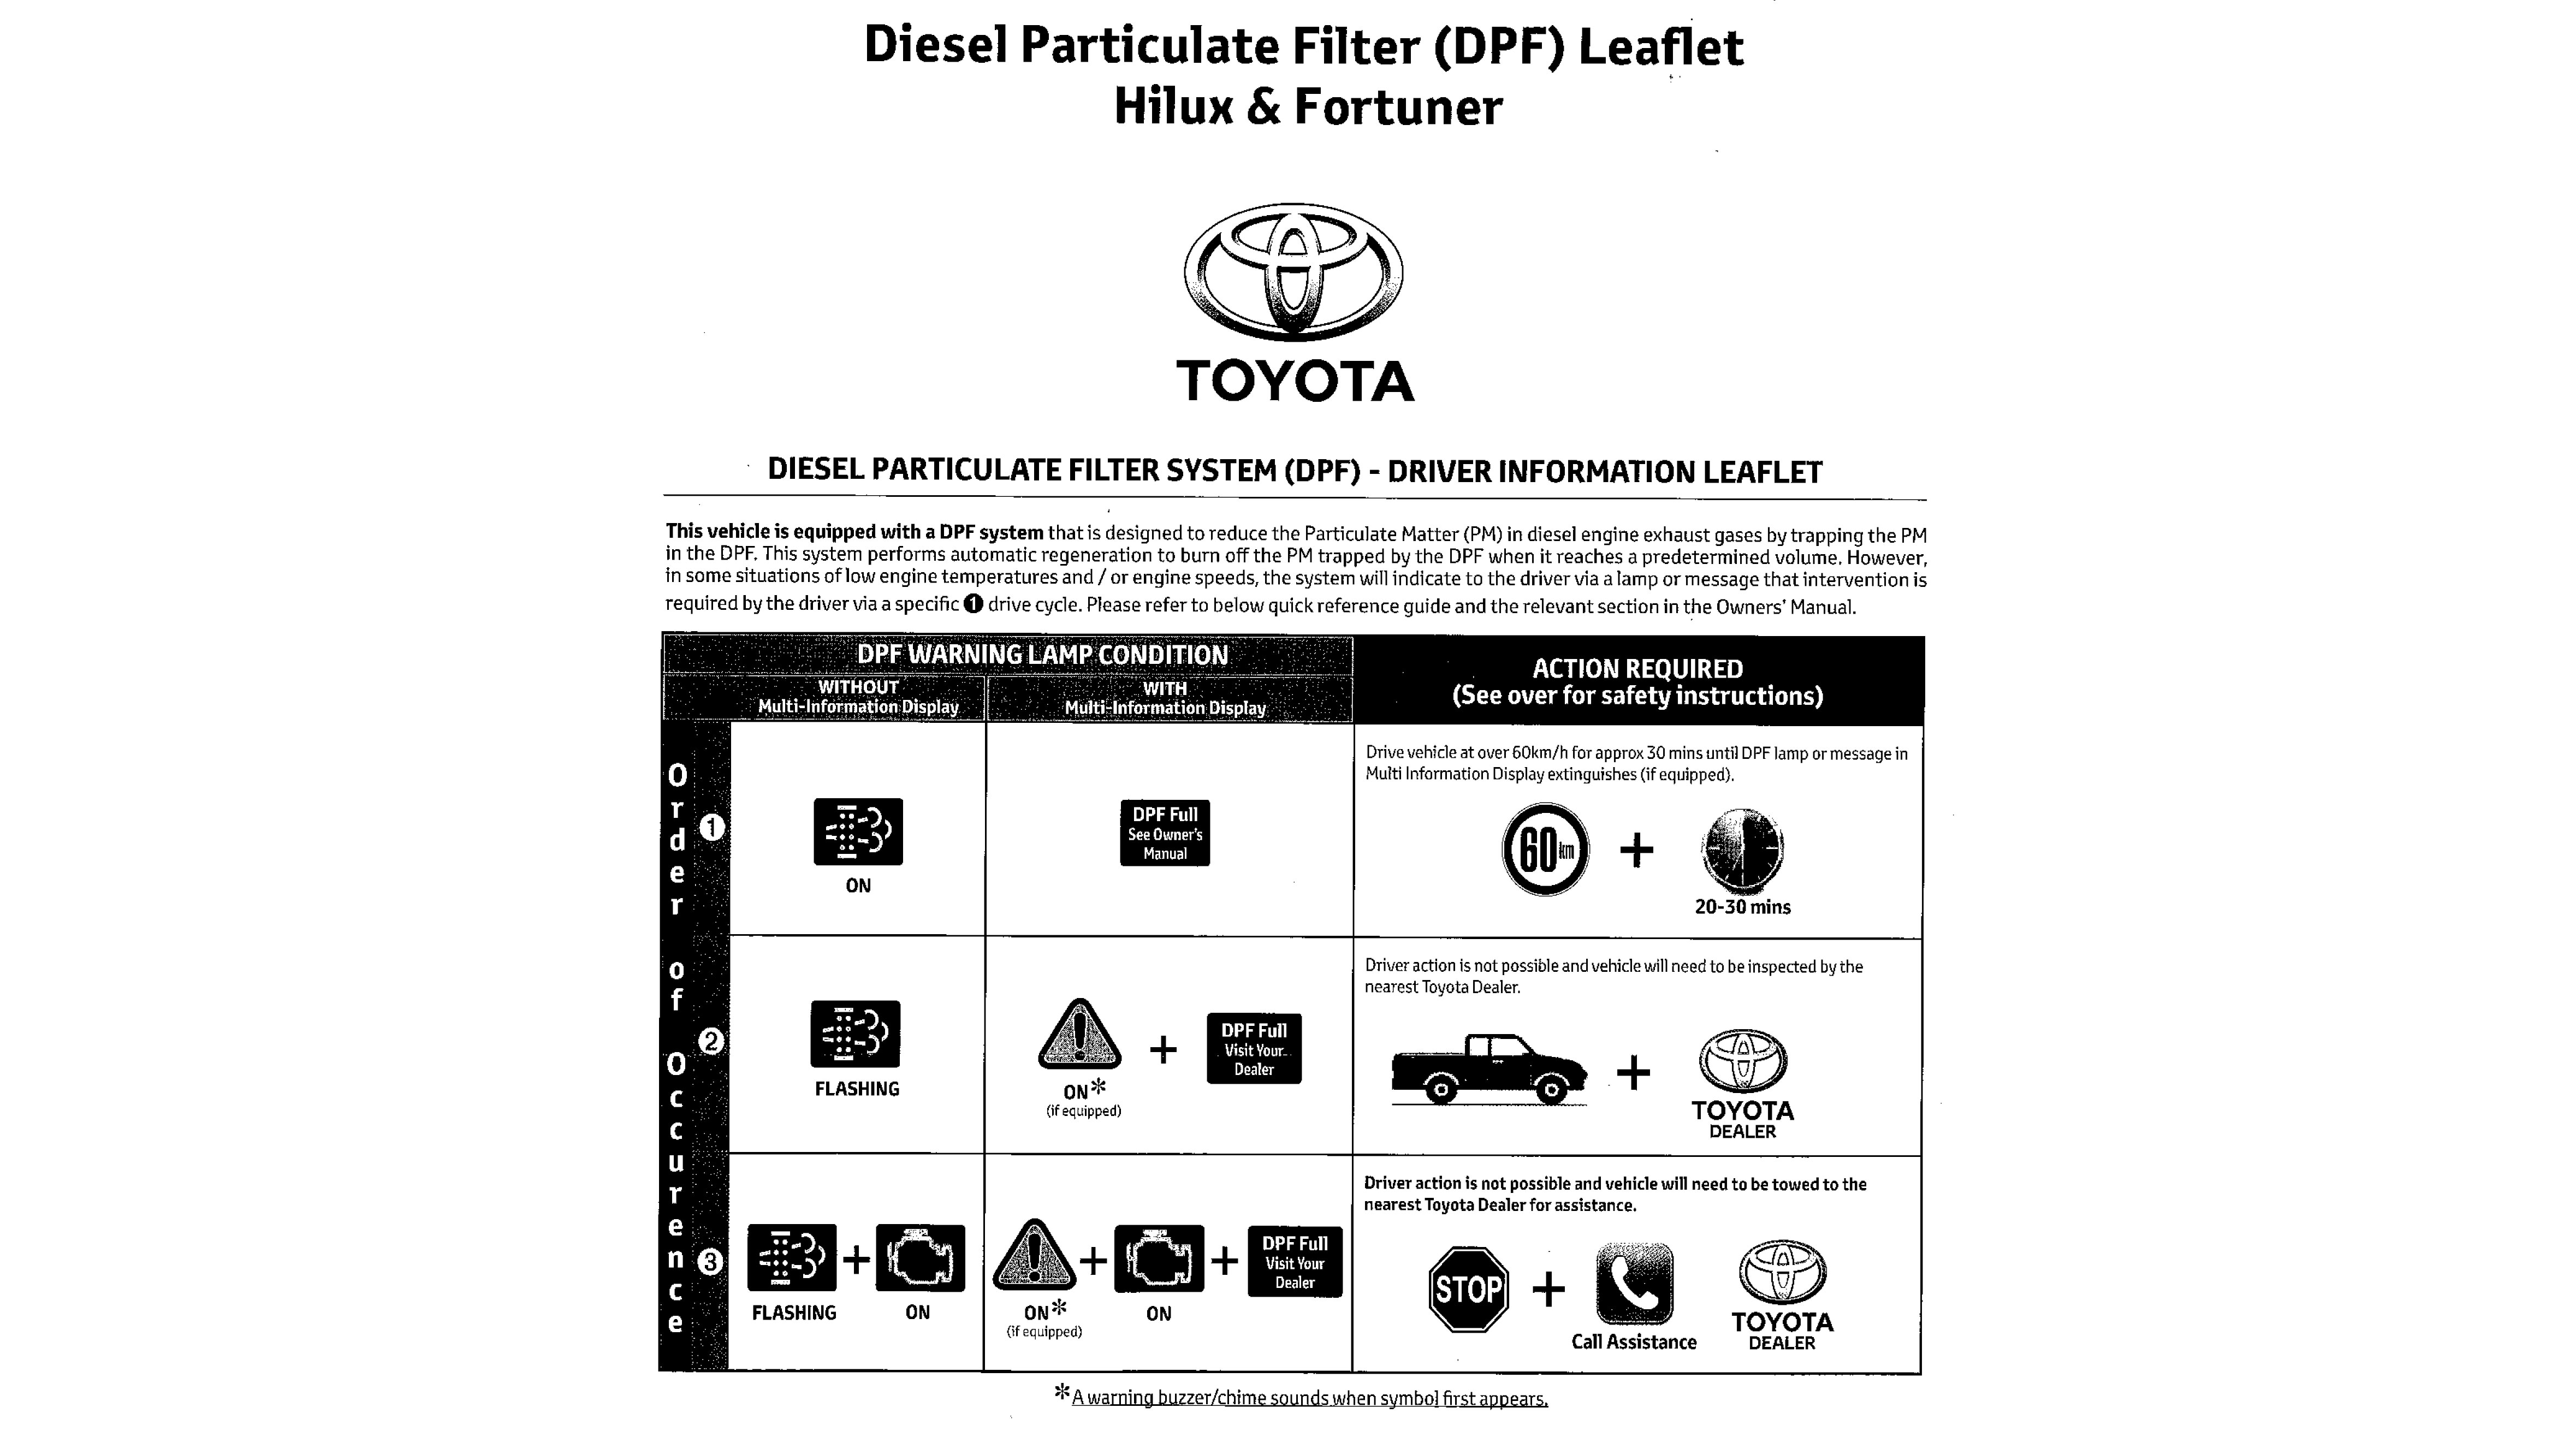 Toyota HiLux and Fortuner Diesel Particulate Filter (DPF